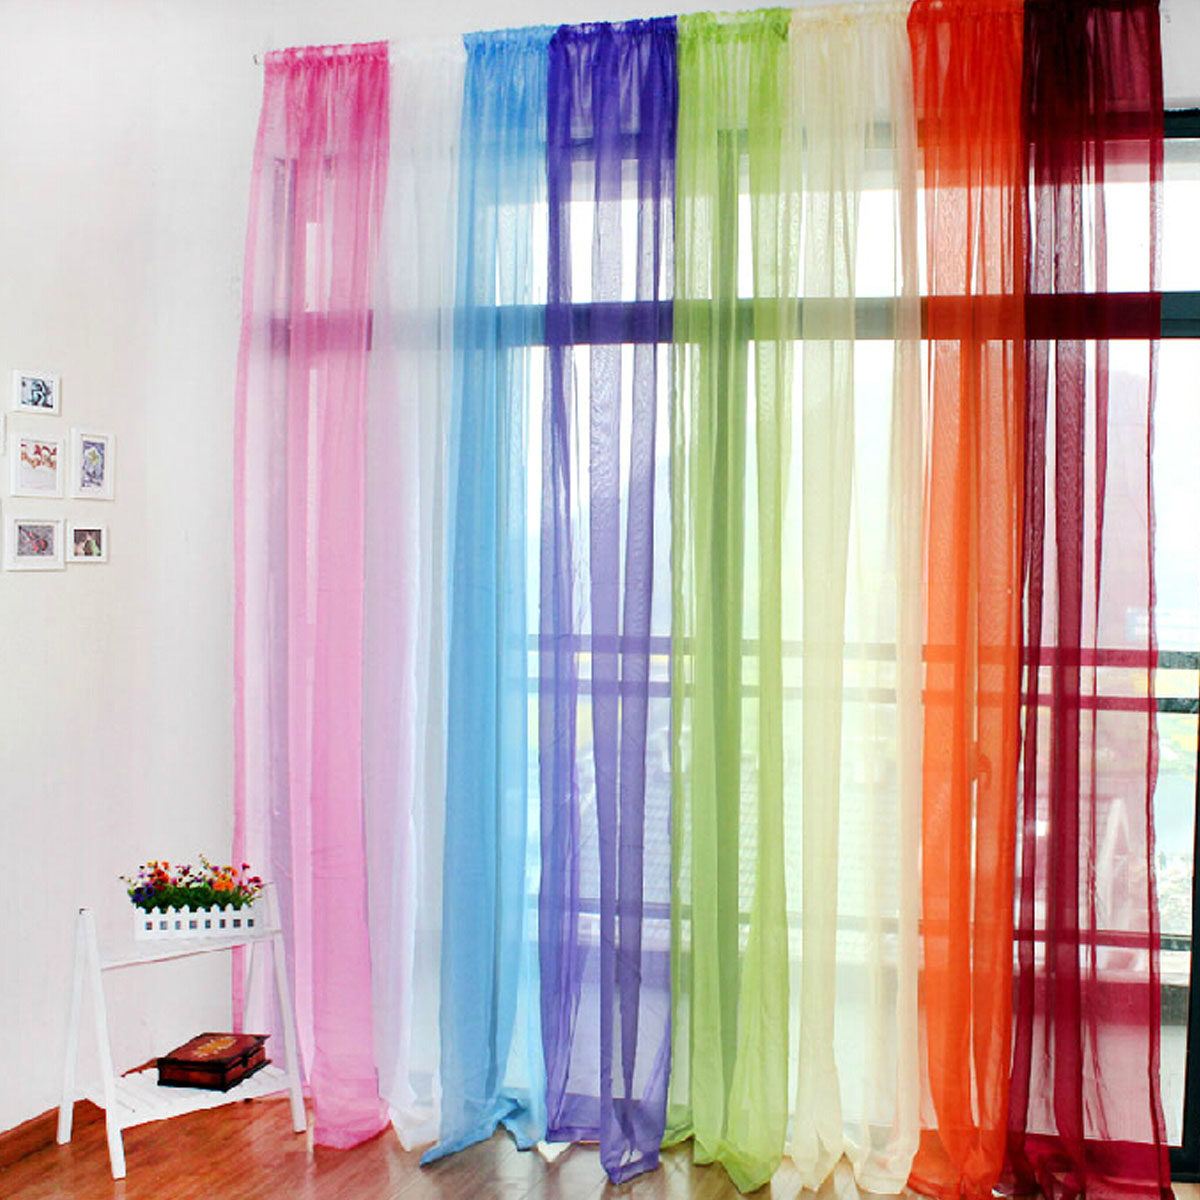 Translucent sheer tulle voile organdy curtain drape for Cortinas infantiles baratas